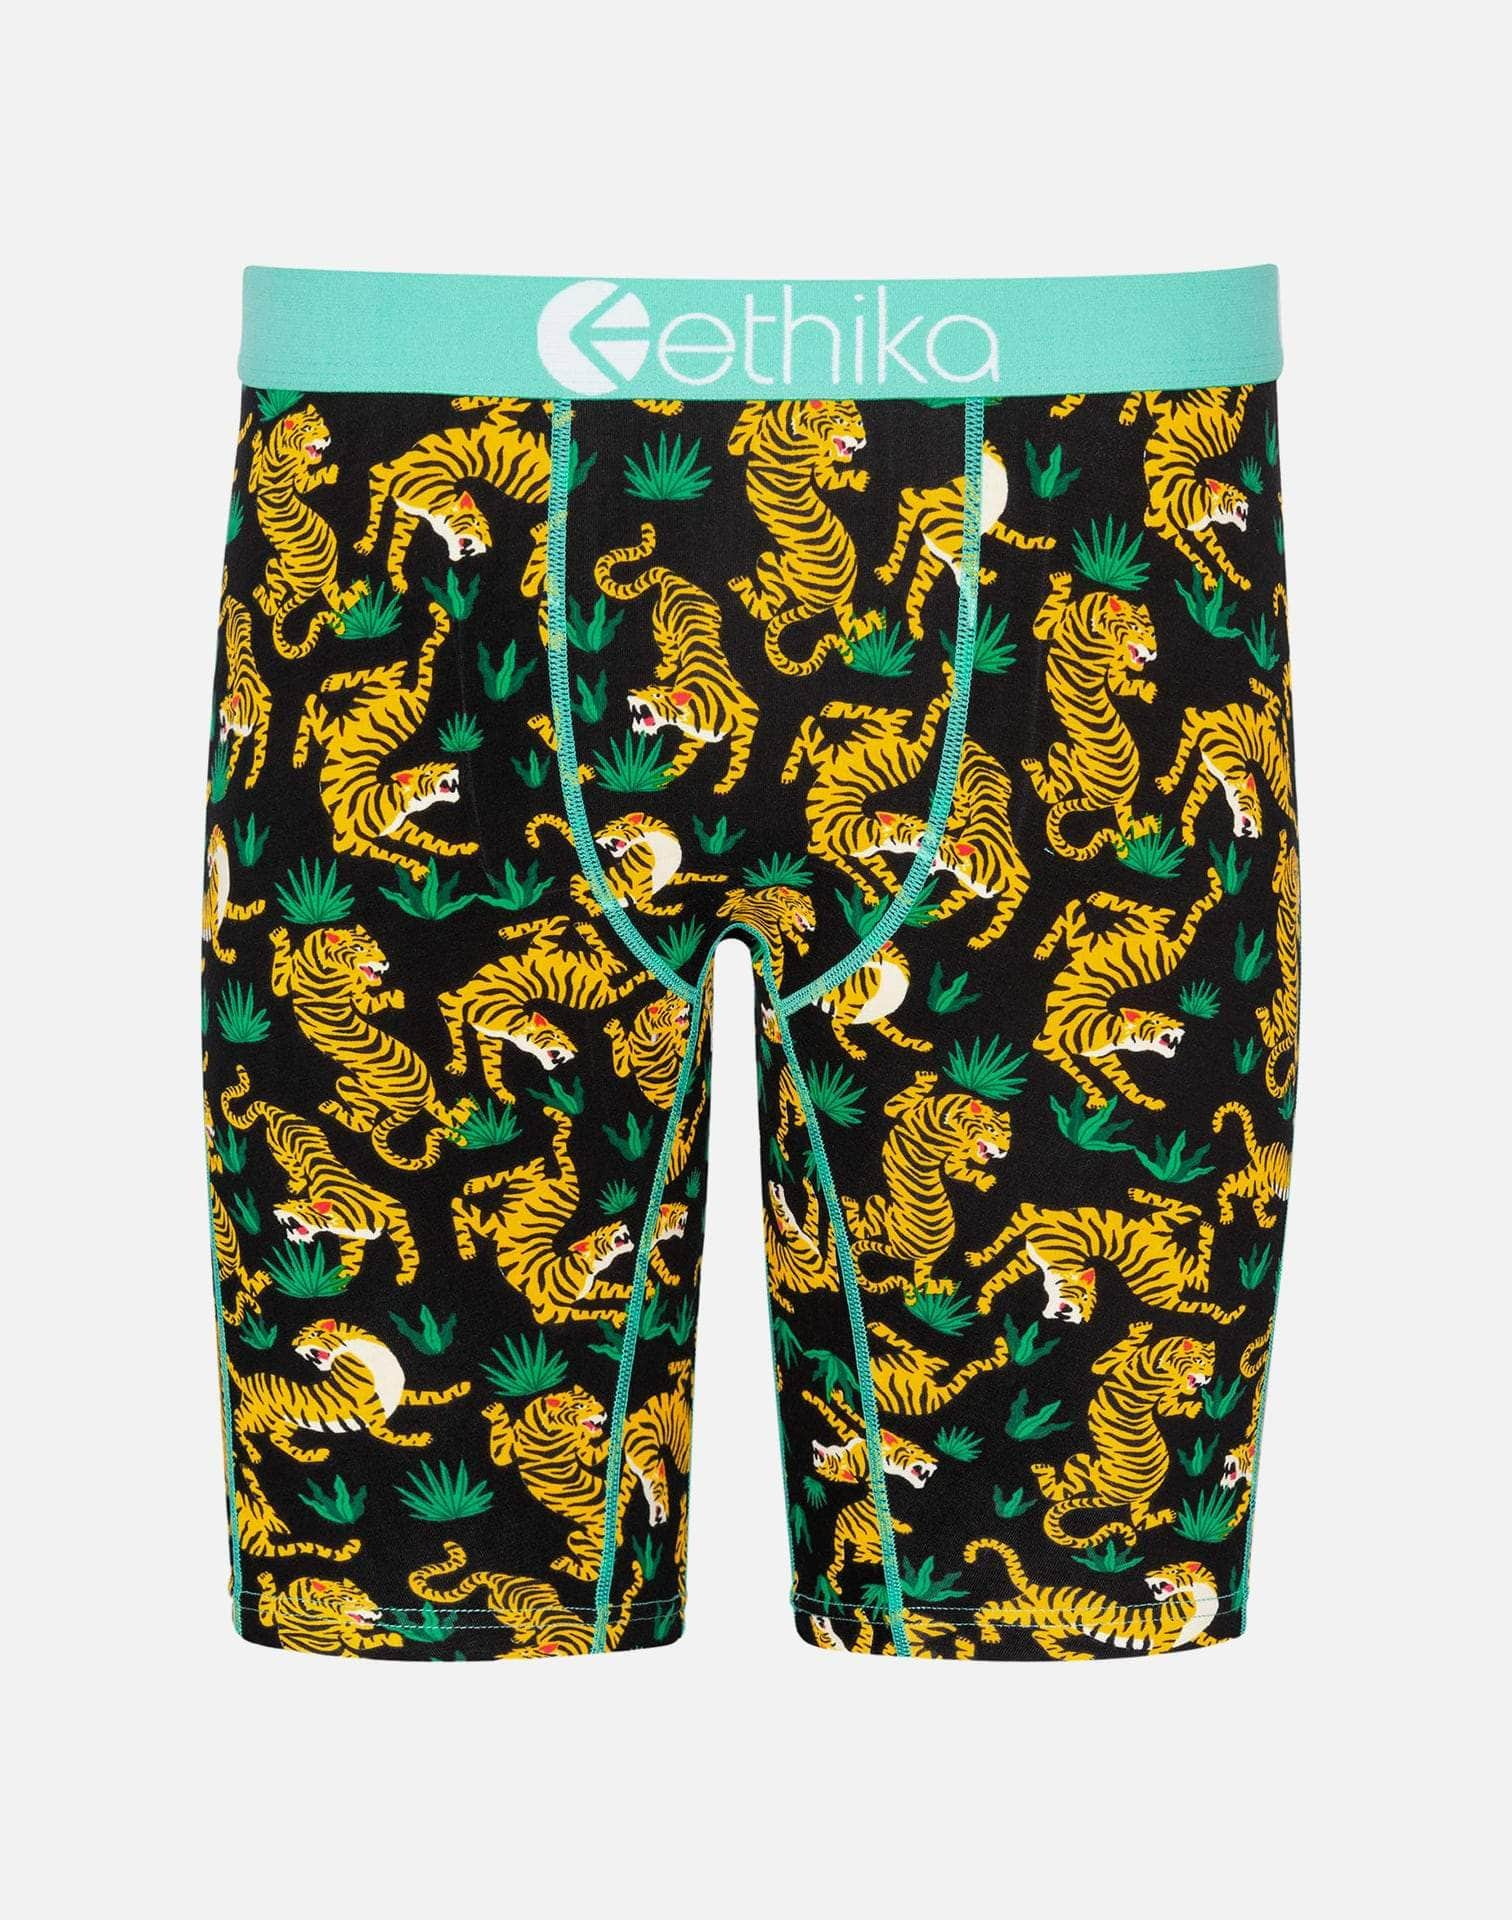 Ethika Men's Suci Boxer Briefs